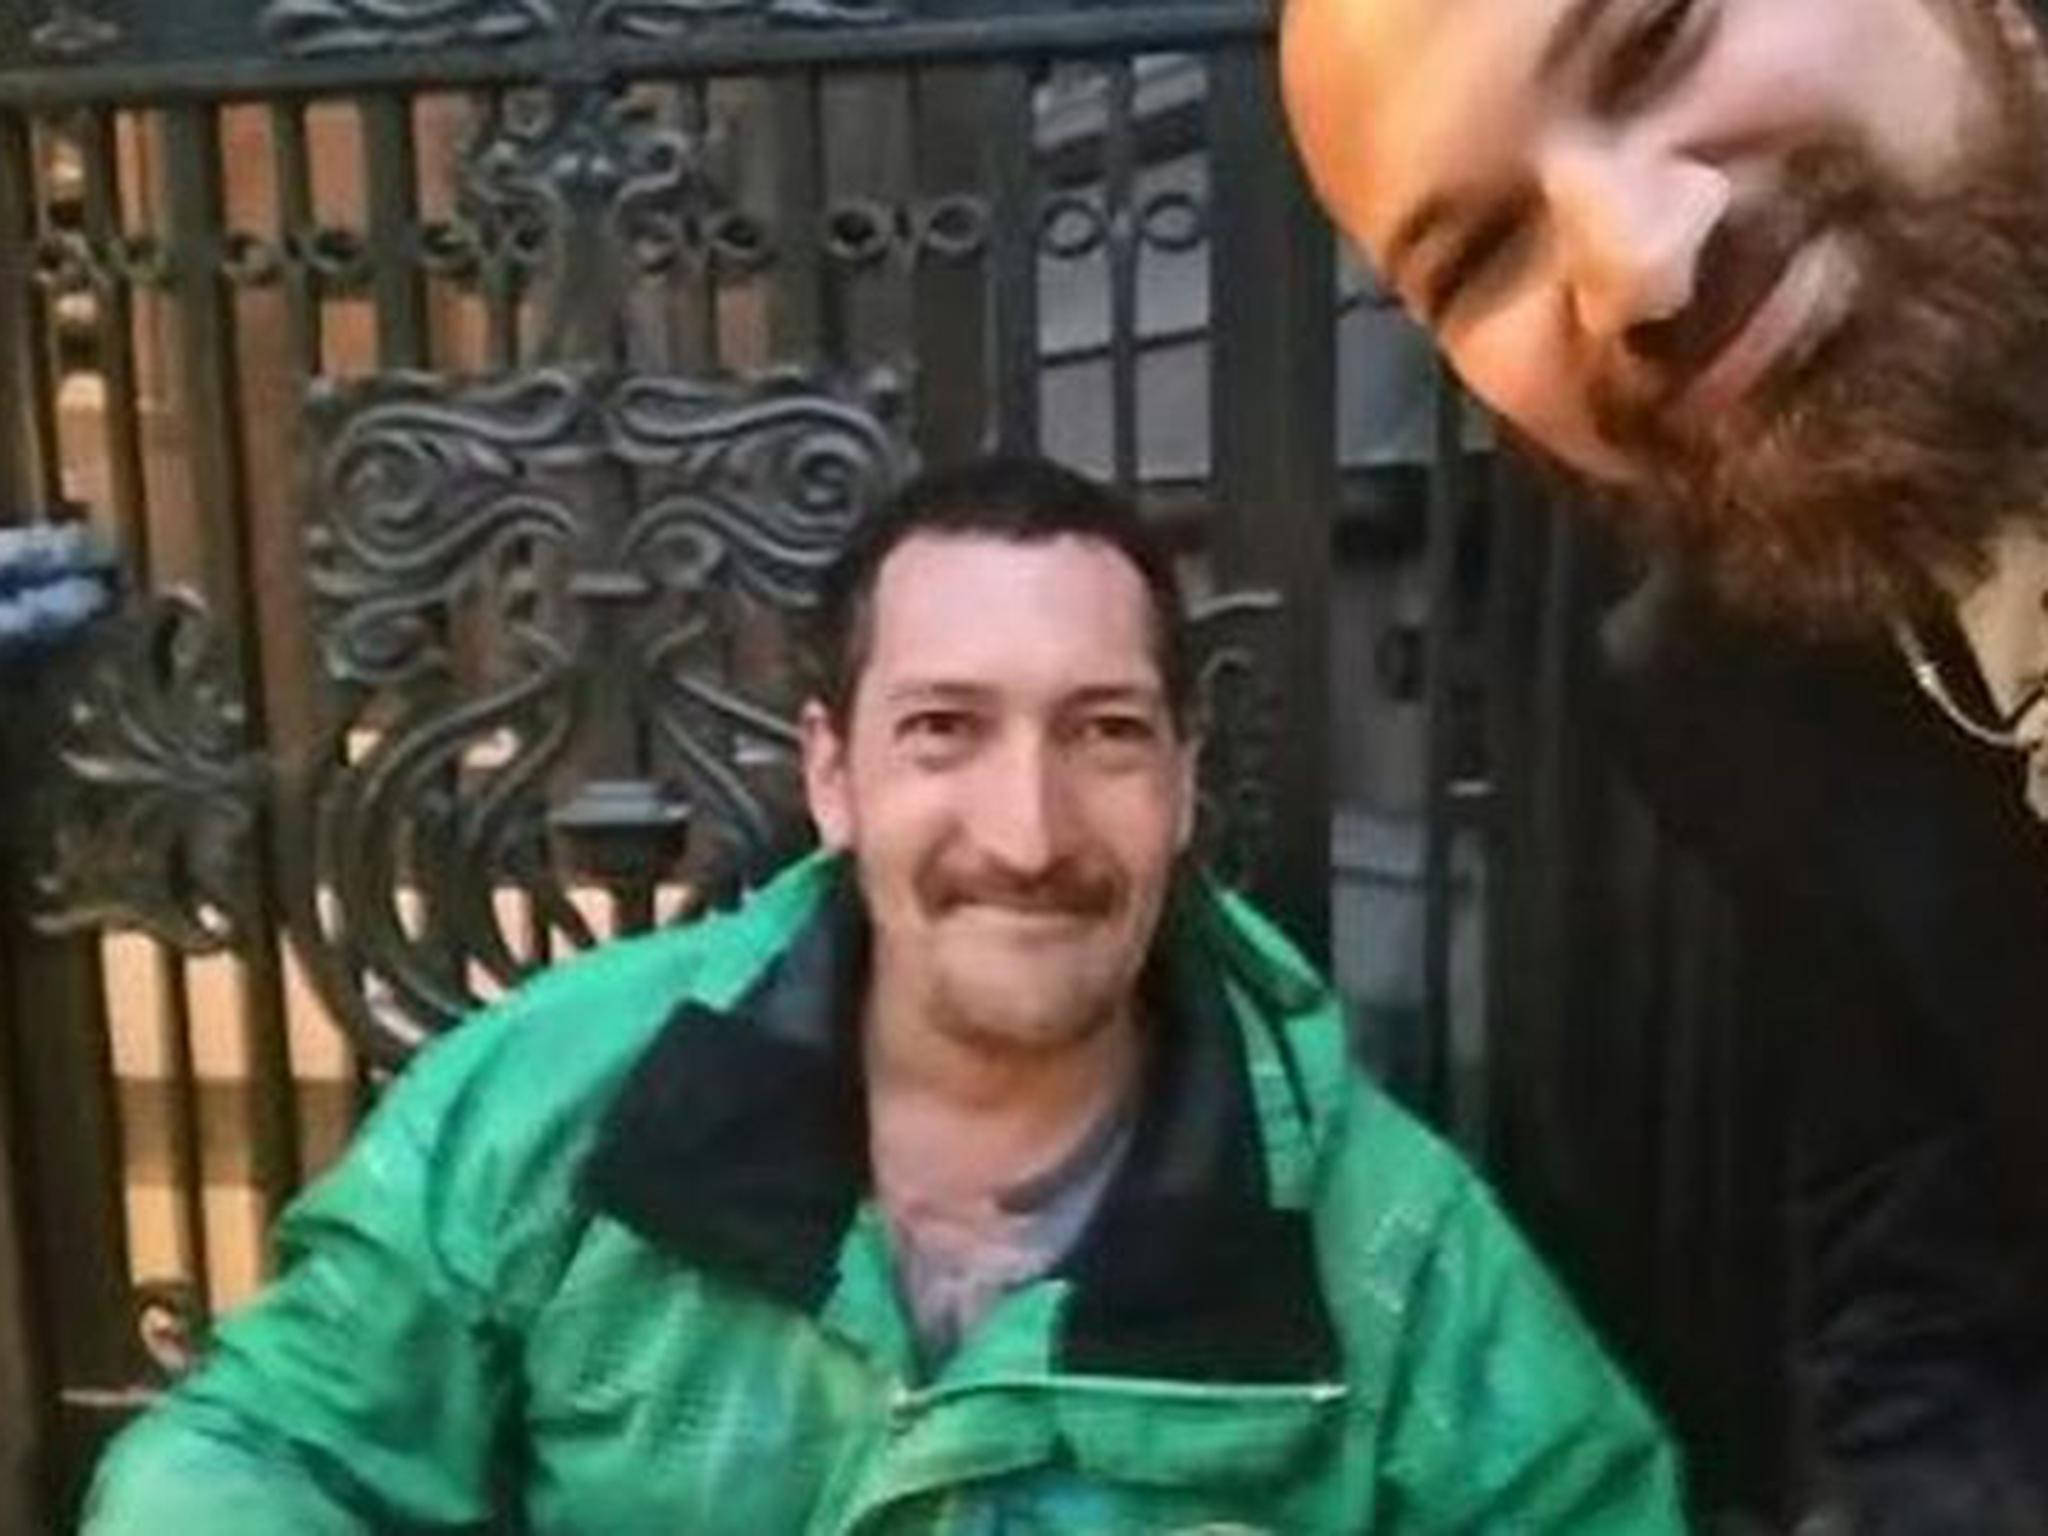 Homeless man lets customer turned away from restaurant borrow his shoes